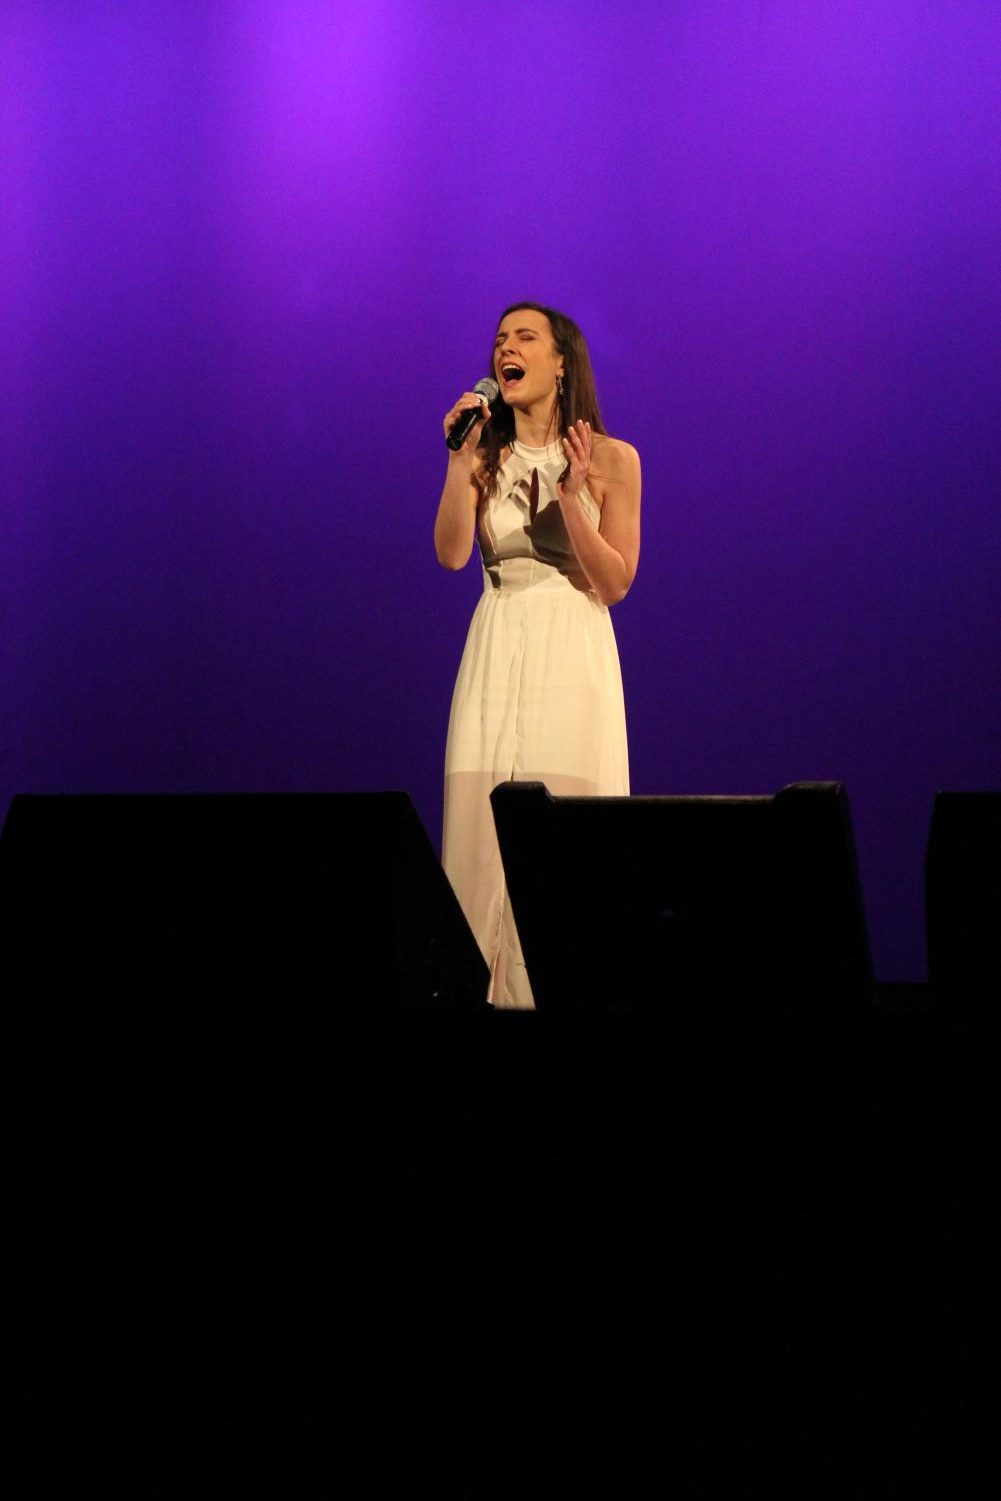 Kaleigh+Bendoff%2C+sophomore%2C+sings+the+first+solo+of+the+night.